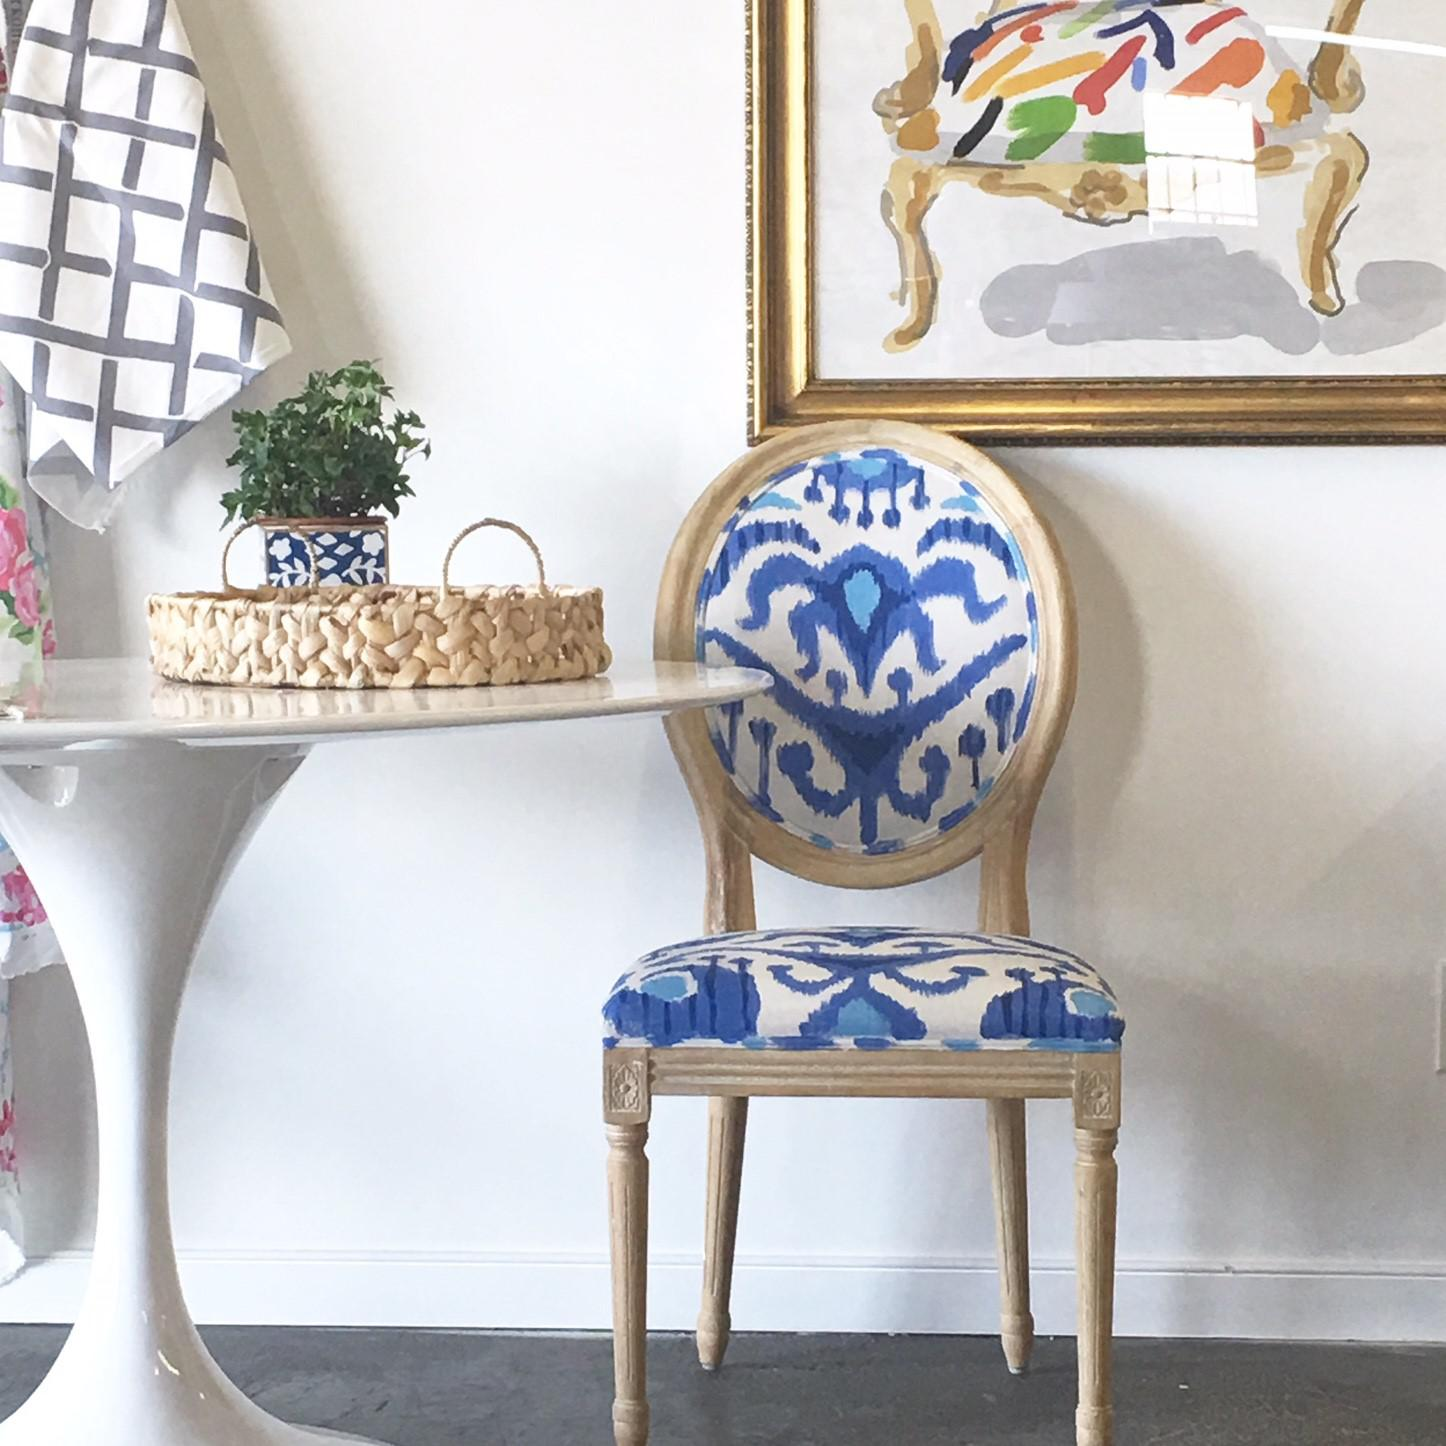 Lovely Occasional Chair Hand Painted In A Lush Exotic Pattern. Navy Blue,  Periwinkle And